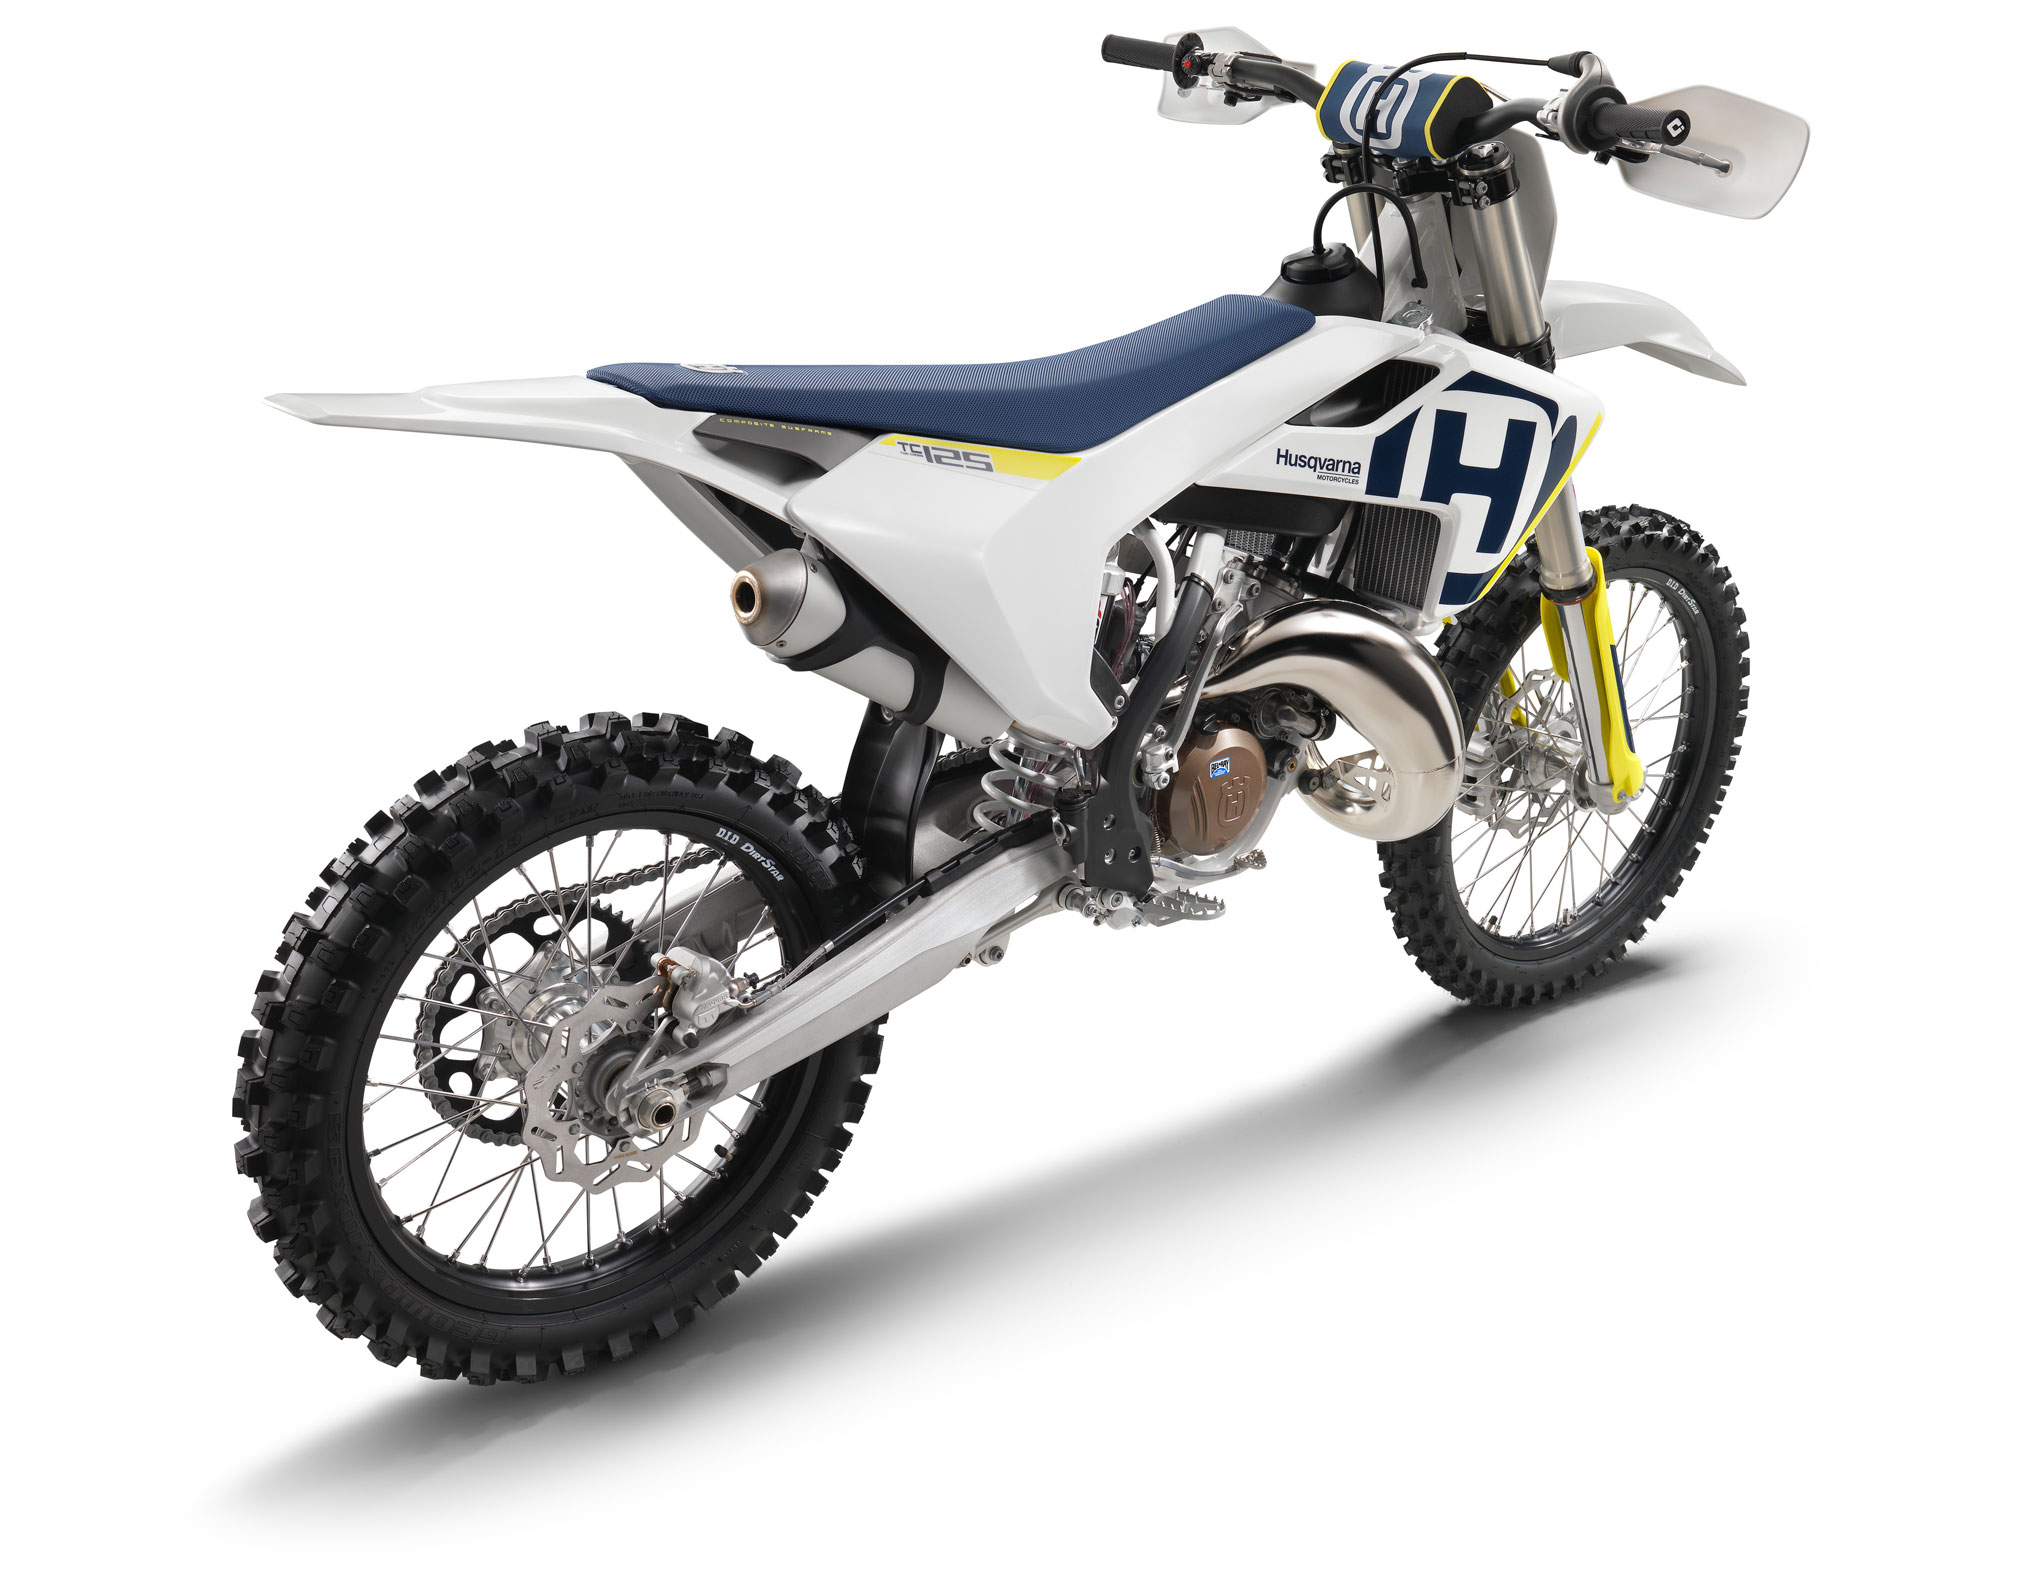 2018 husqvarna tc125 review totalmotorcycle. Black Bedroom Furniture Sets. Home Design Ideas